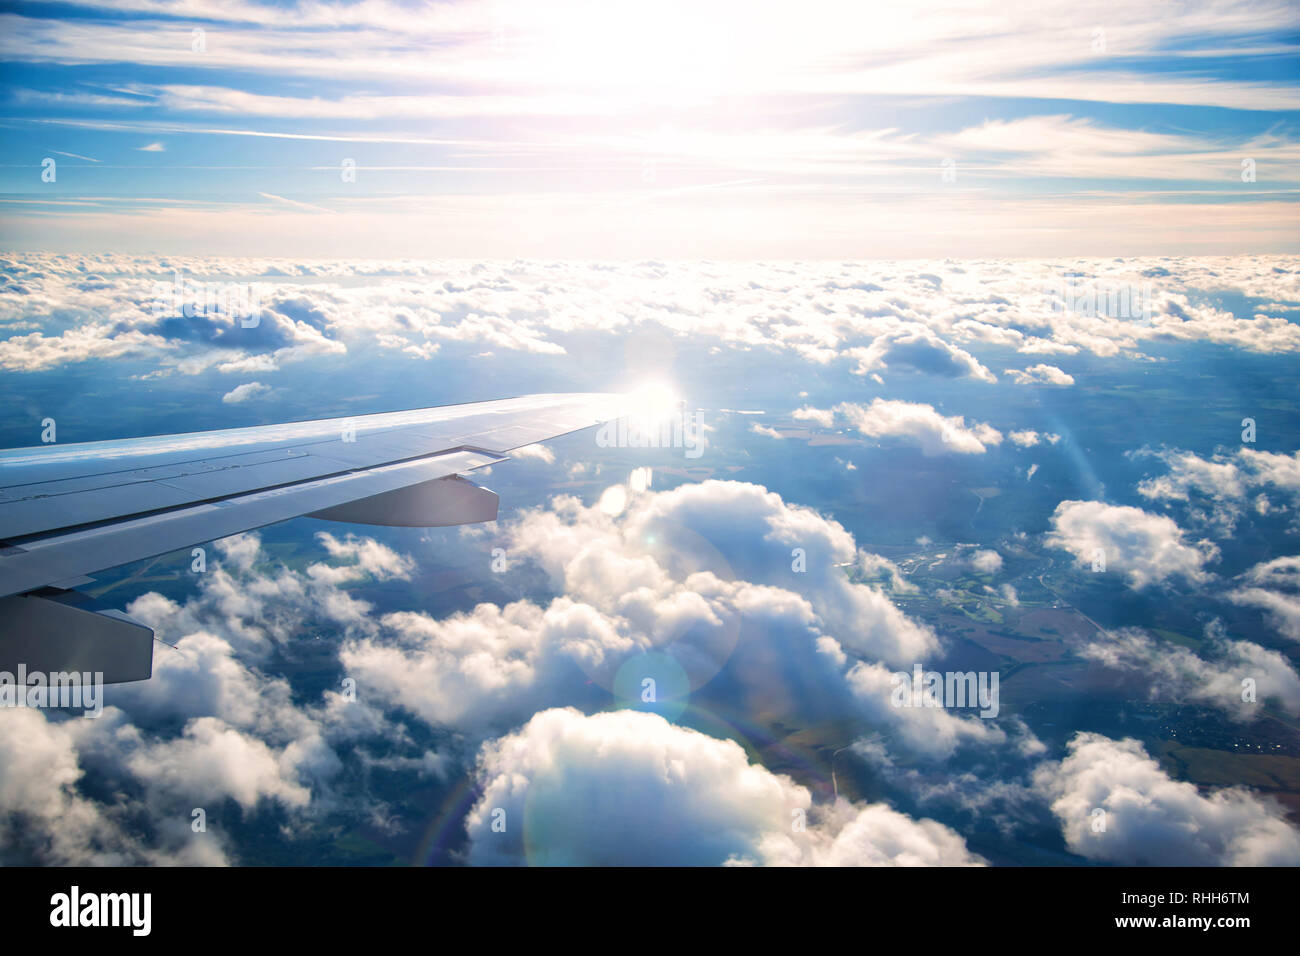 plane wing with beautiful white clouds in background at sunset Stock Photo